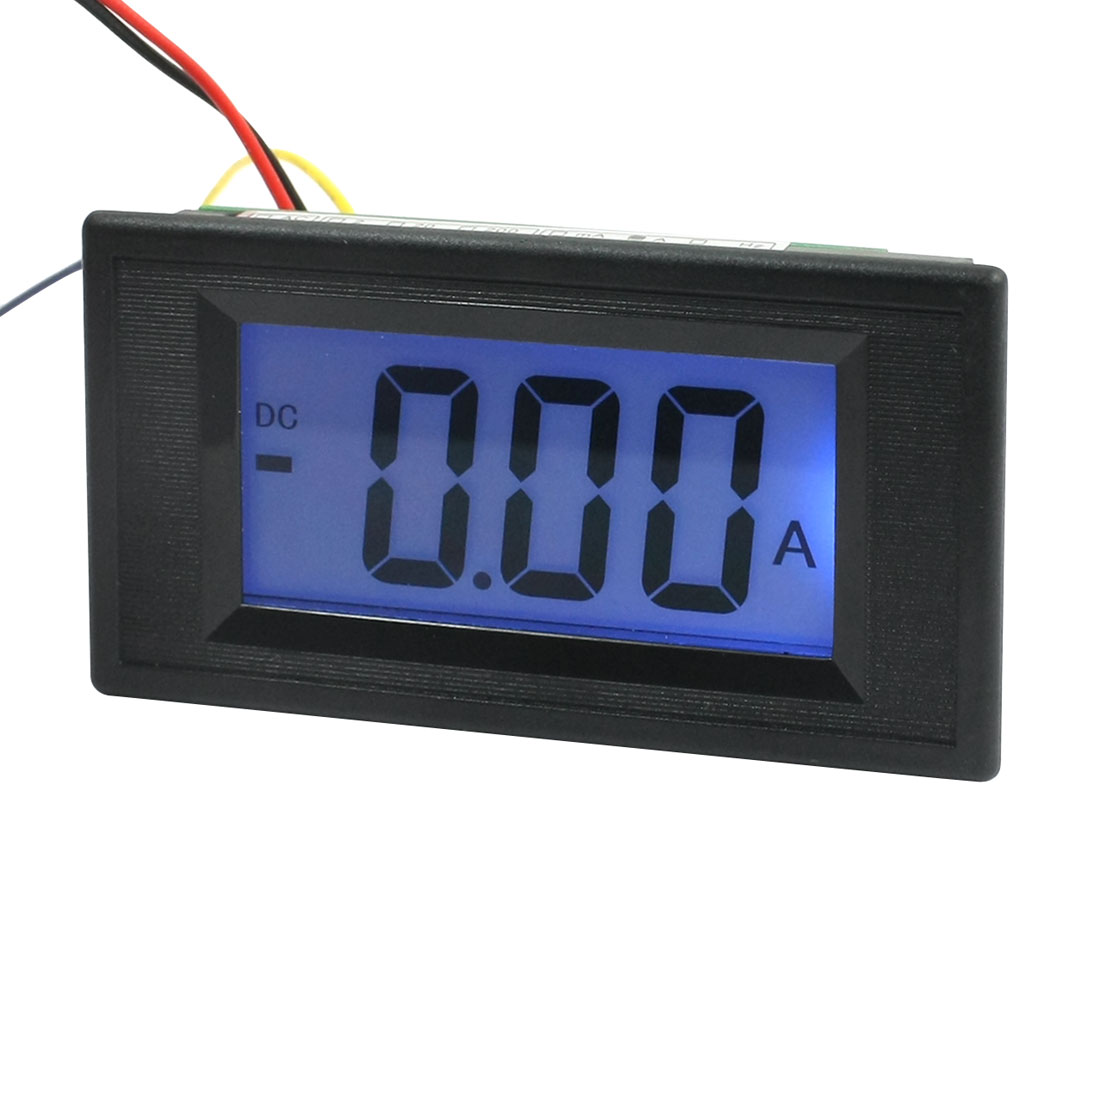 DC 5A Blue LCD Digital Display Ampere Meter Ammeter Panel Gauge